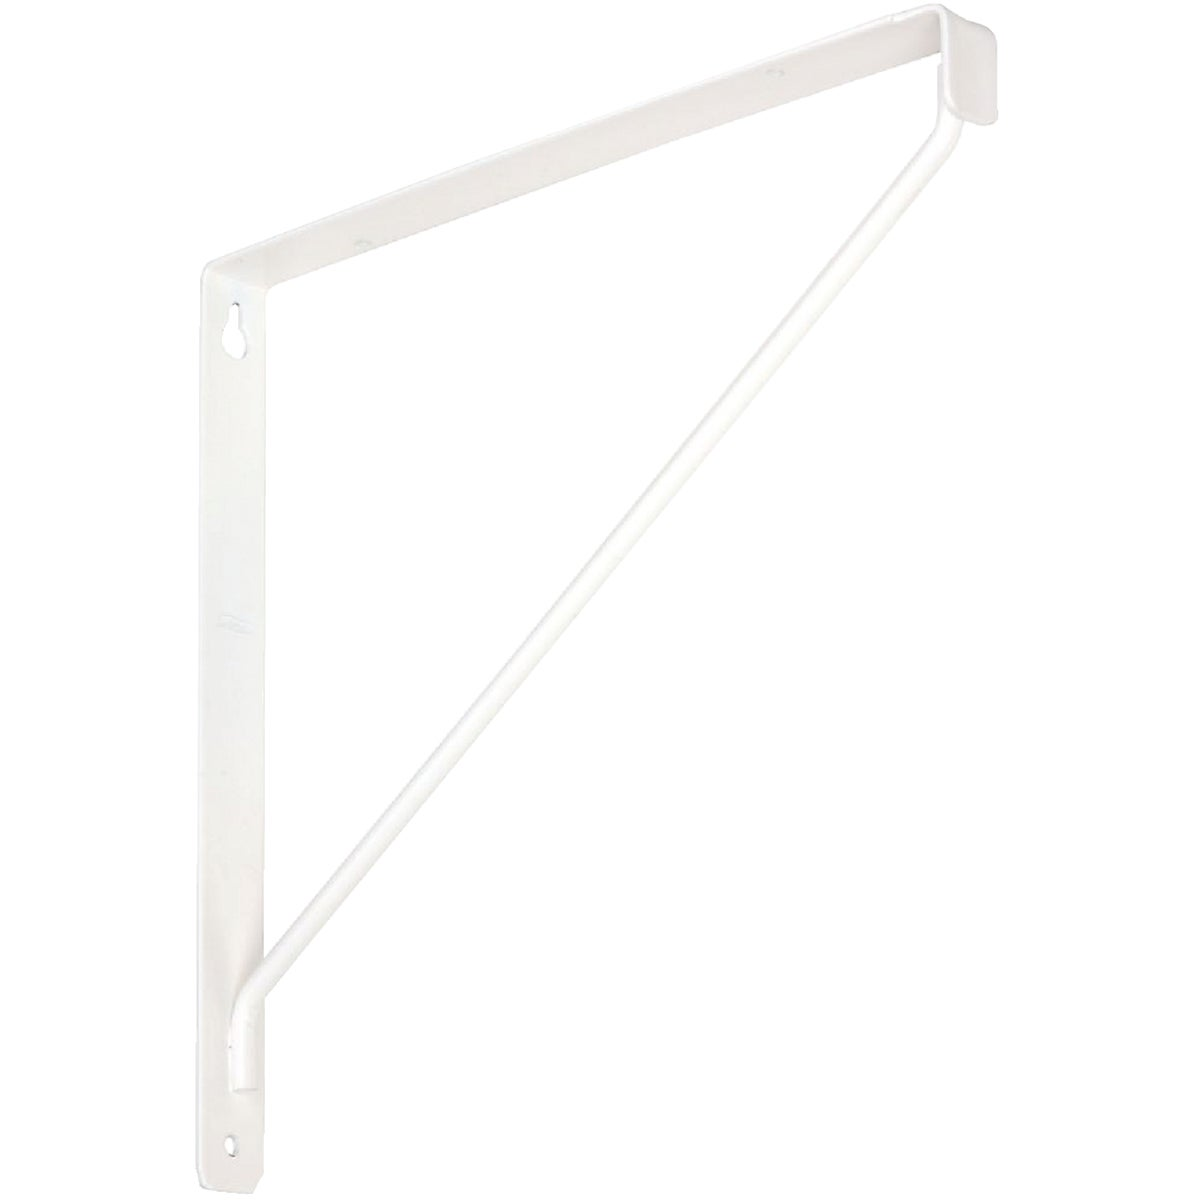 WHT SHELF BRACKET - N234401 by National Mfg Co